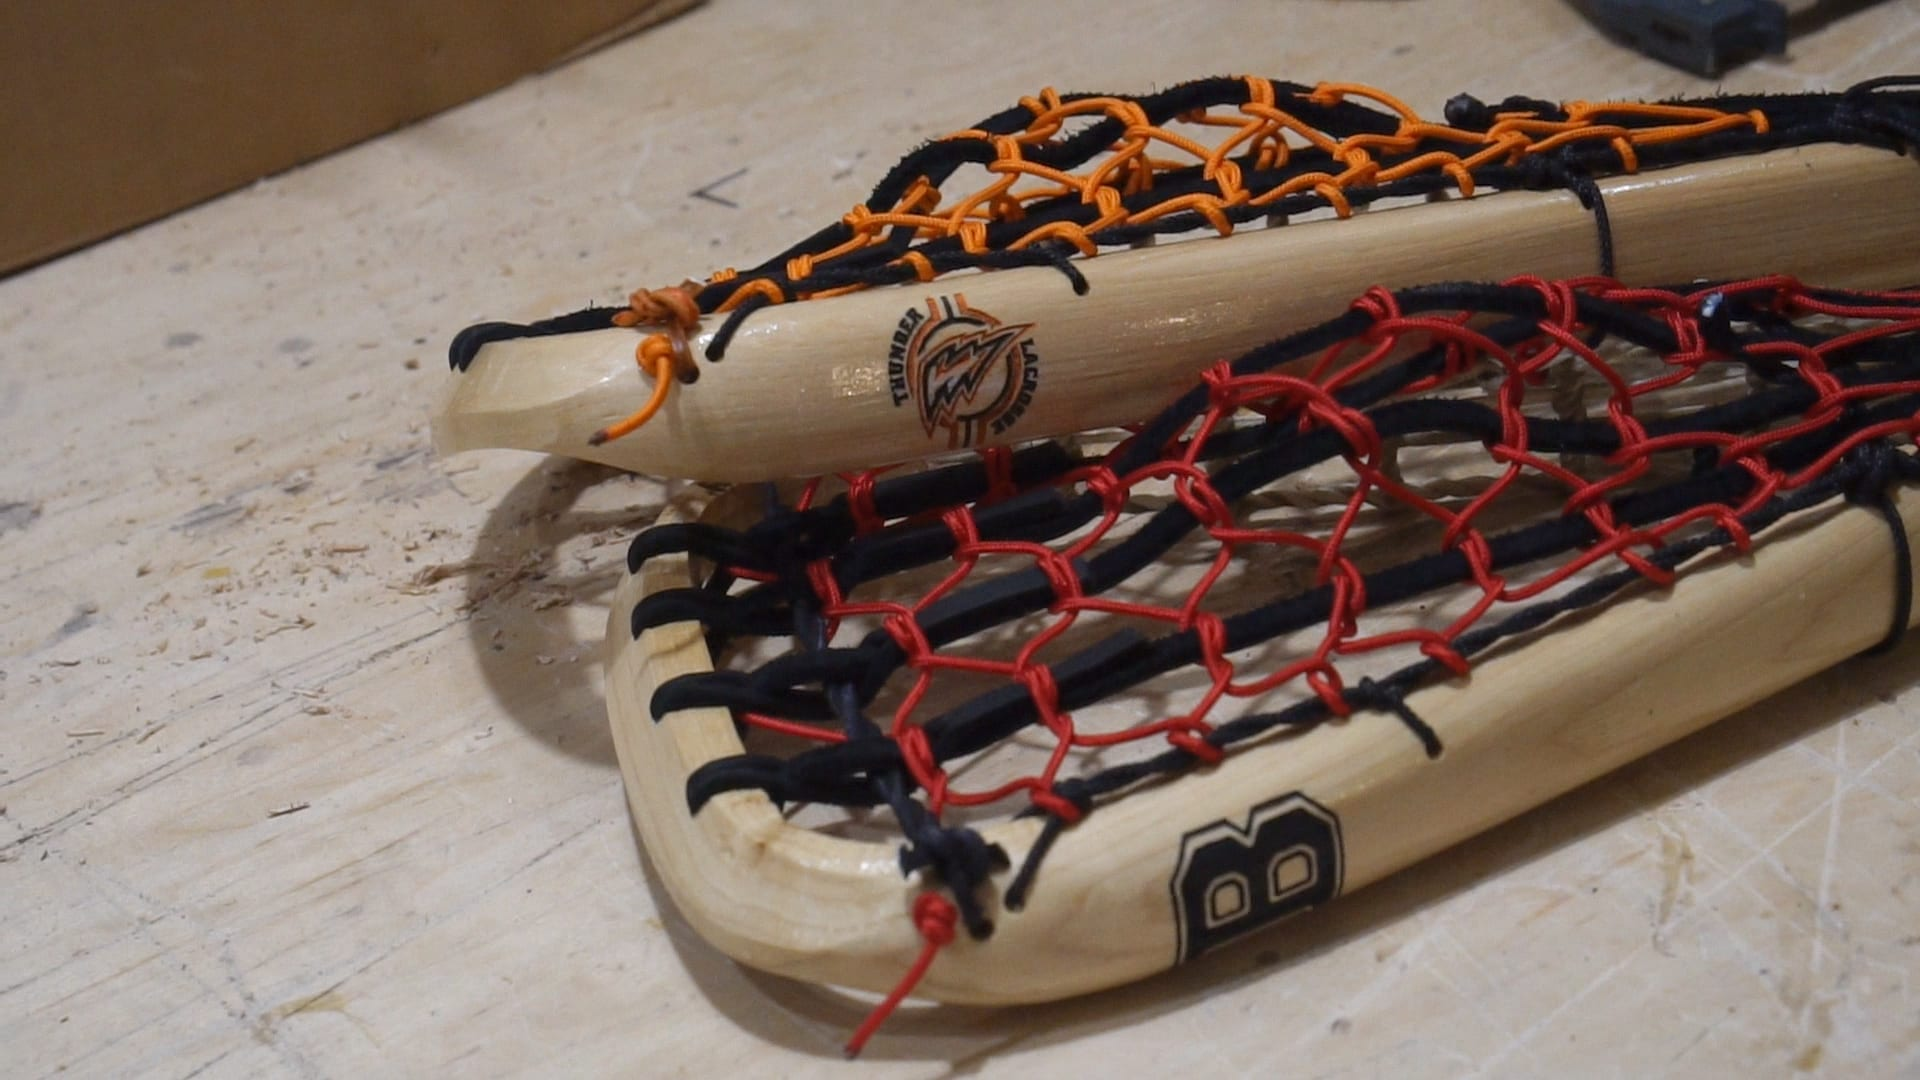 boonton lacrosse new jersey thunder wood lacrosse sticks color series justin skaggs